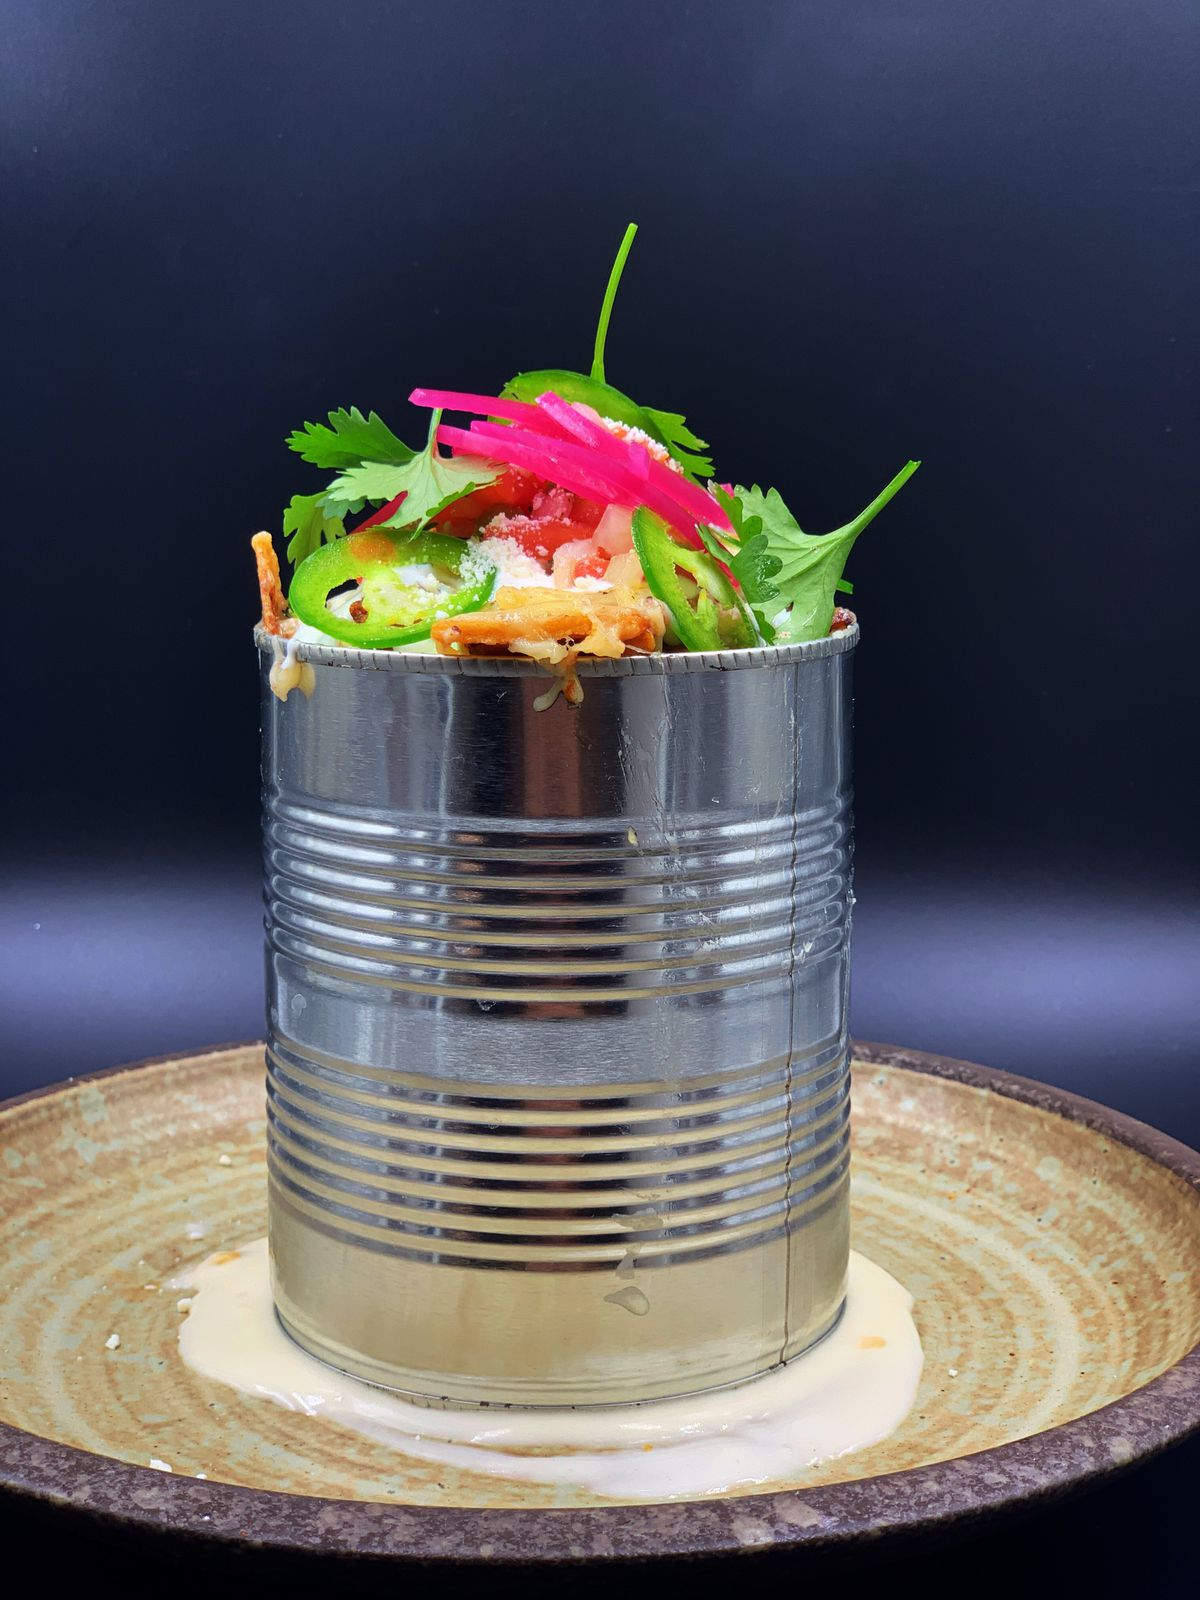 A metal can sits on a plate, with cilantro, red onions, jalapenos, and other ingredients rising out of the top